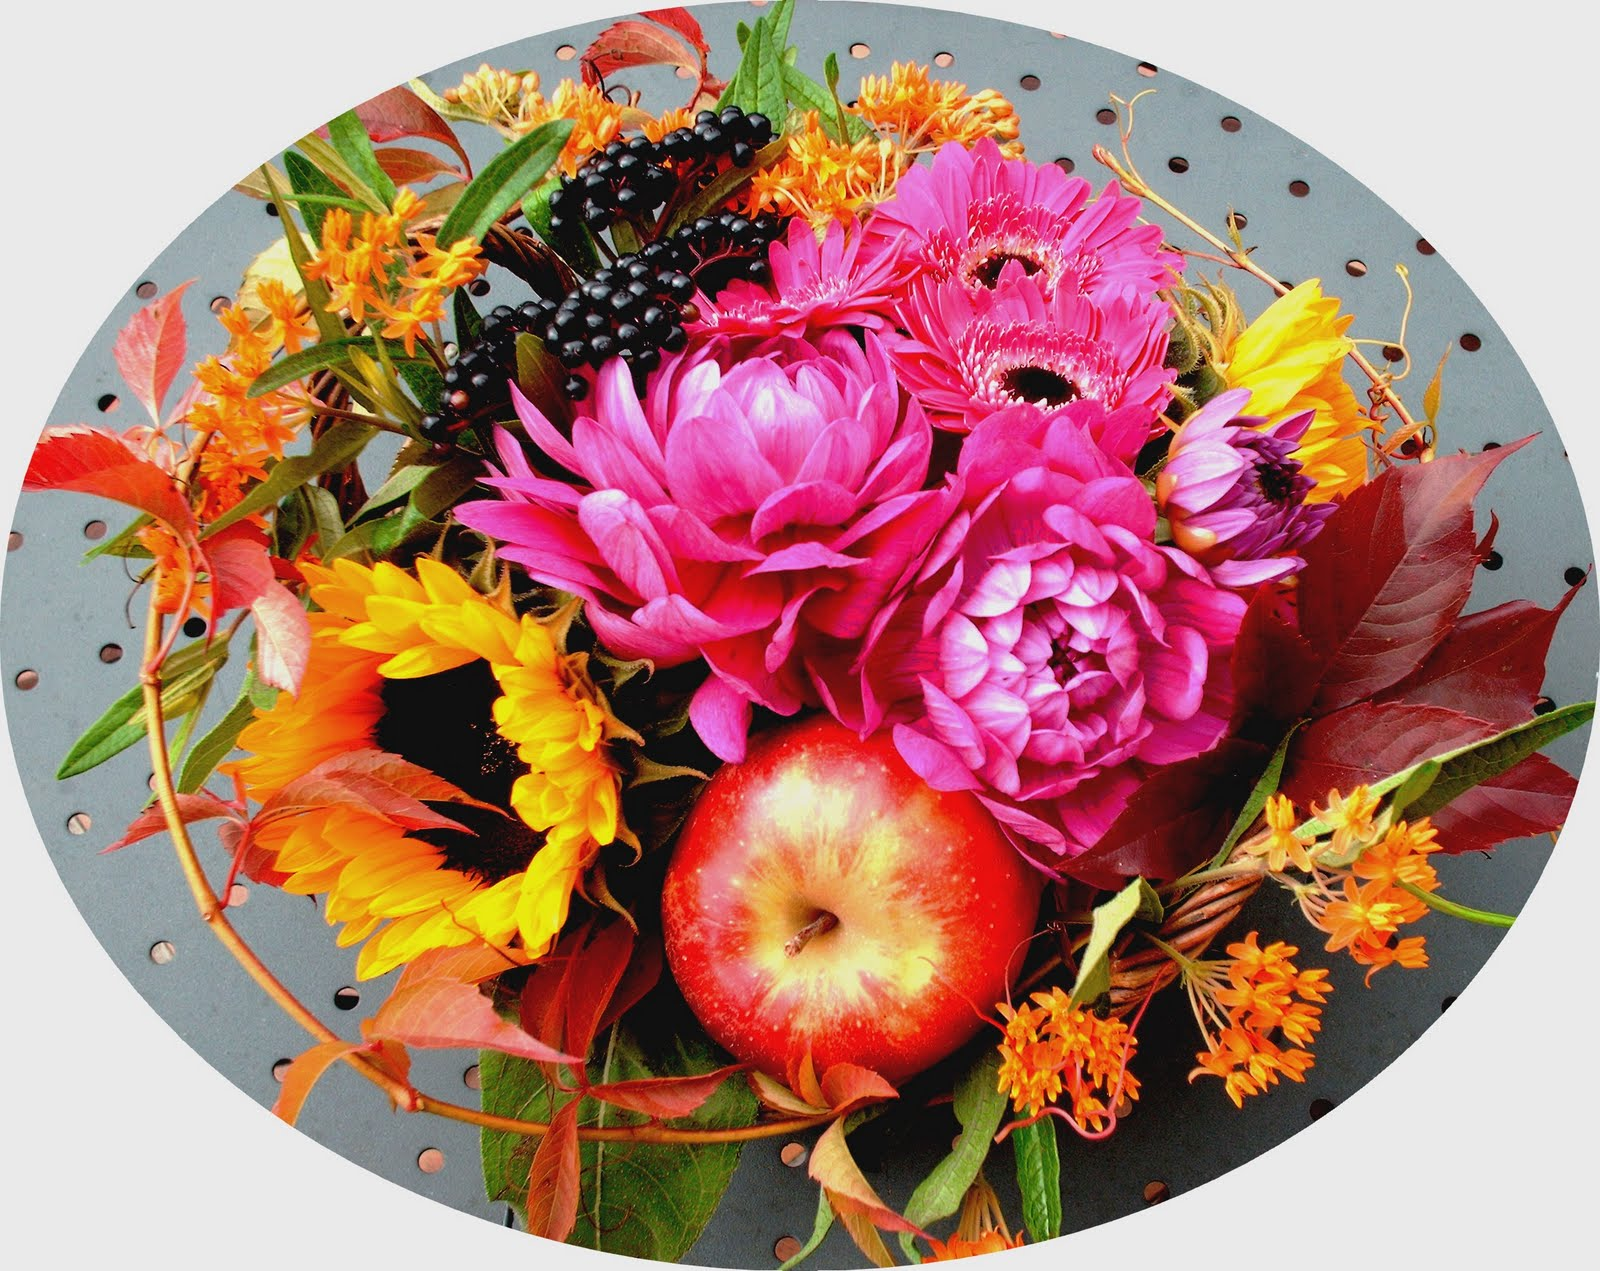 Composer Son Bouquet Fleurs Bouquet Septembre